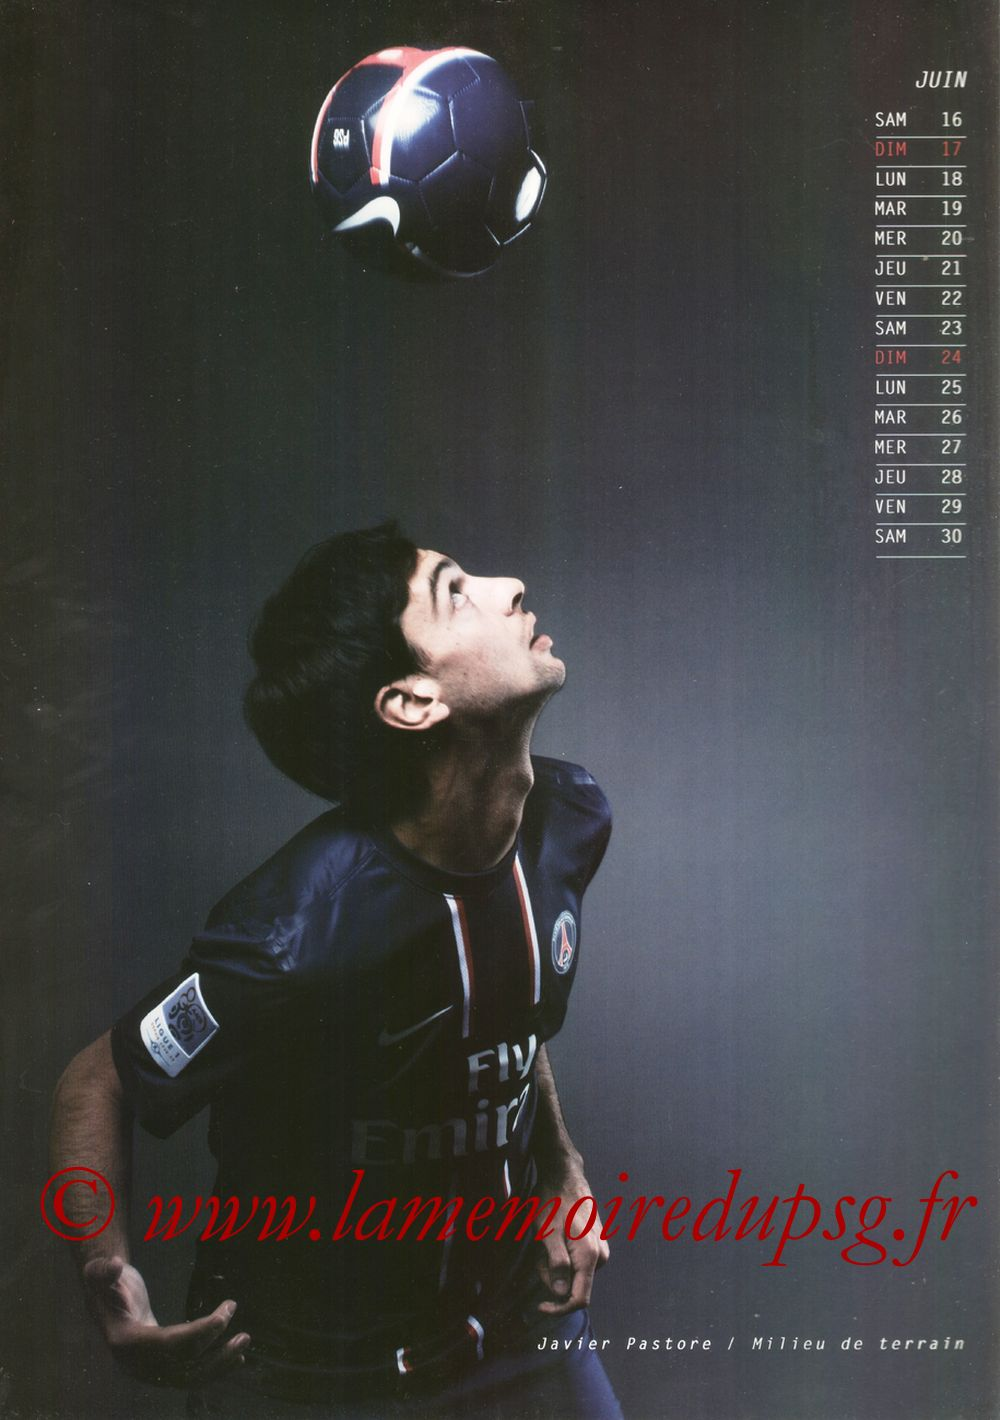 Calendrier PSG 2013 - Page 12 - Javier PASTORE